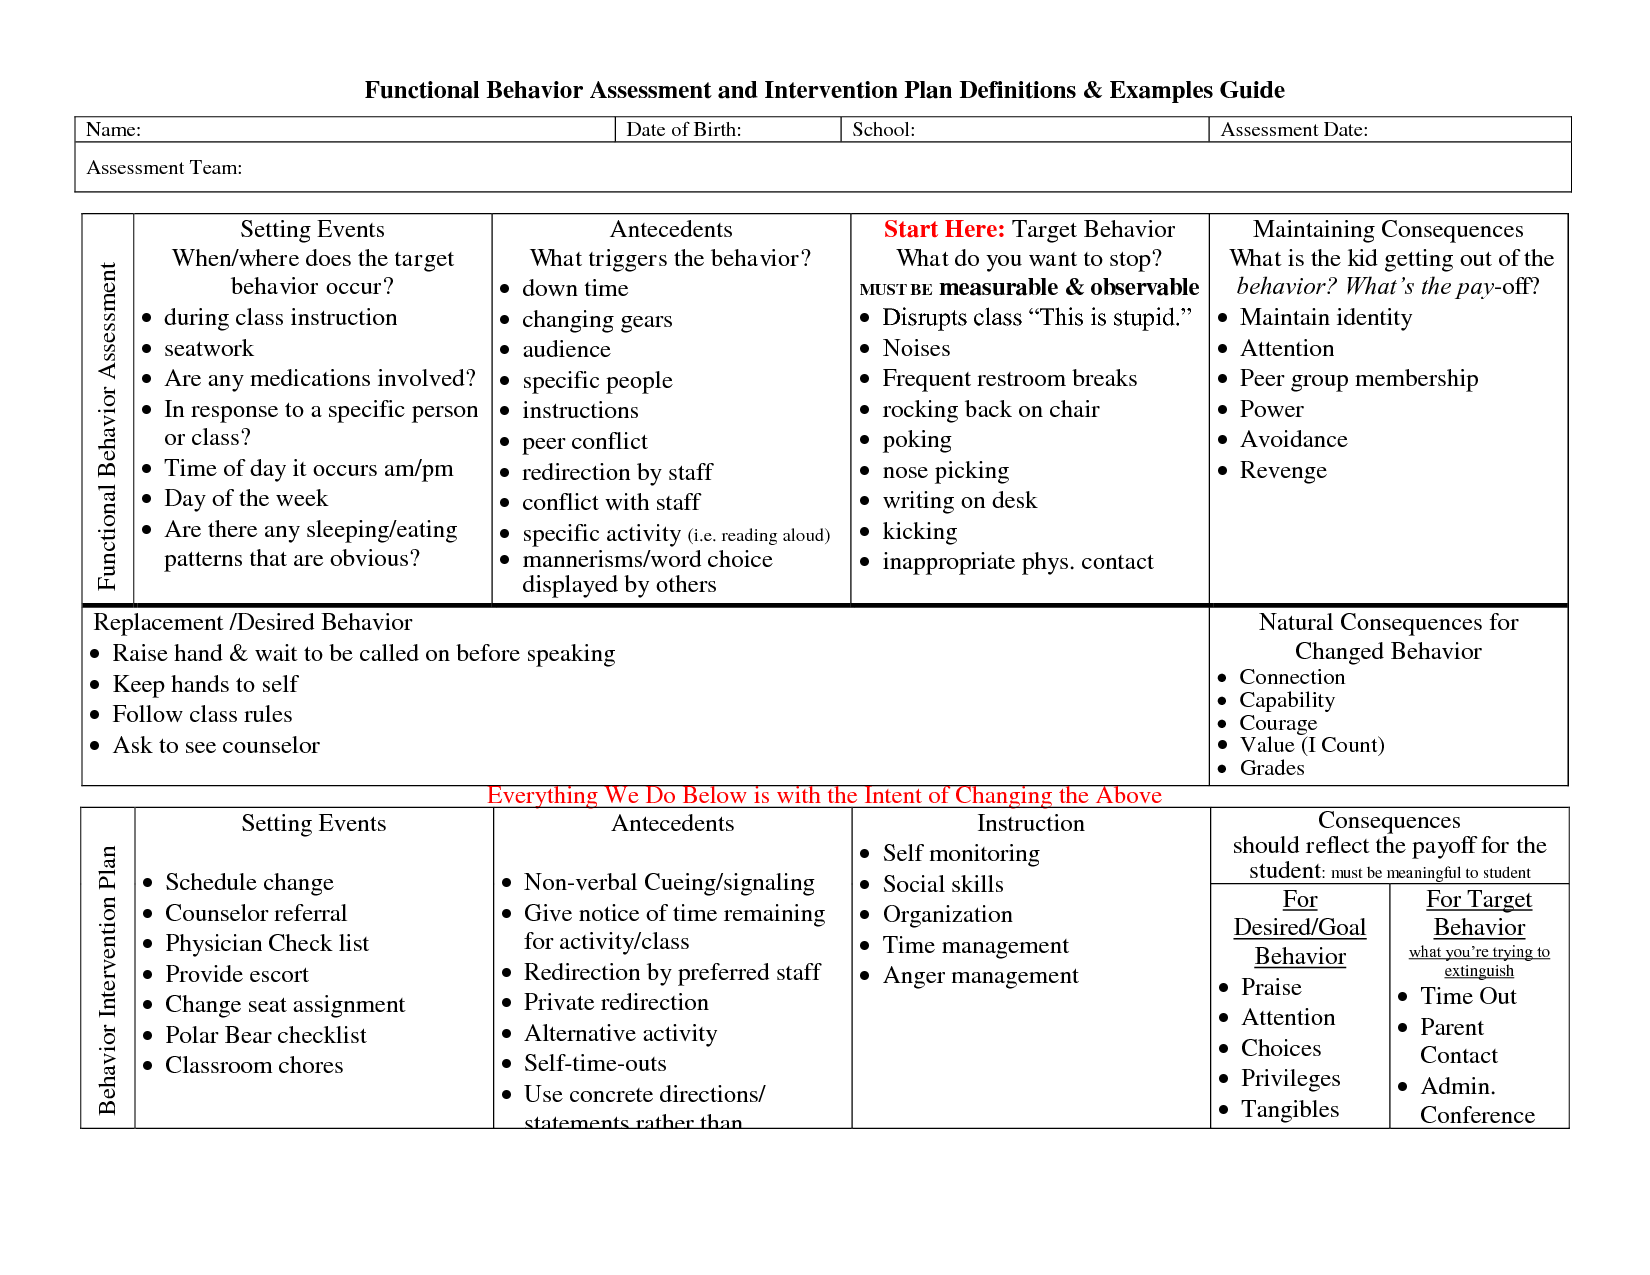 functional behavior assessment example Google Search